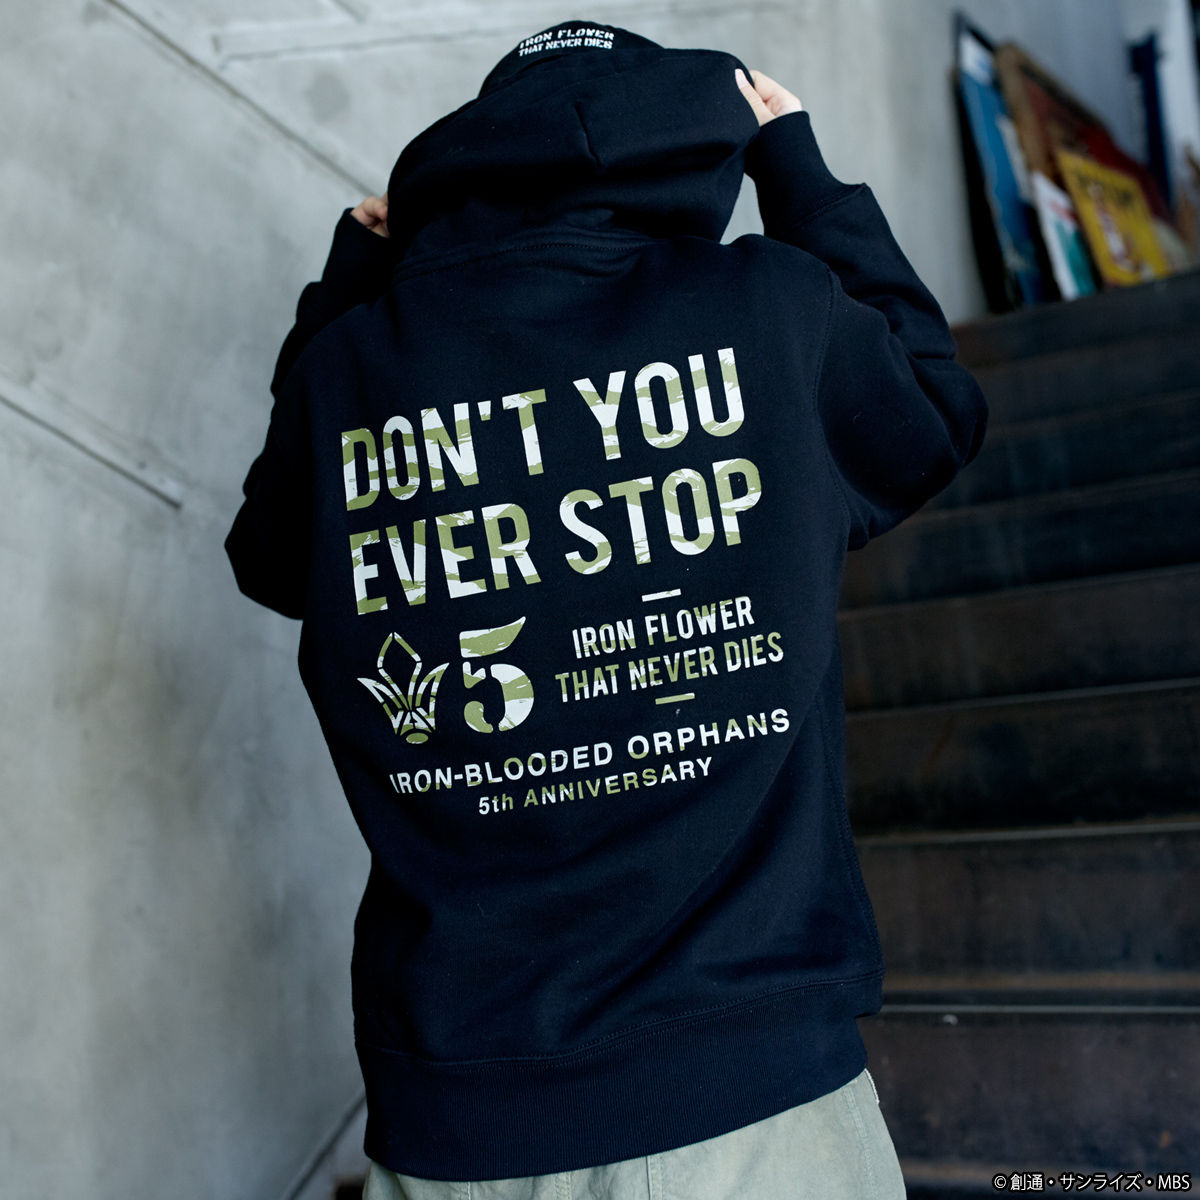 5th Anniversary Hoodie—Mobile Suit Gundam IRON-BLOODED ORPHANS/STRICT-G Collaboration